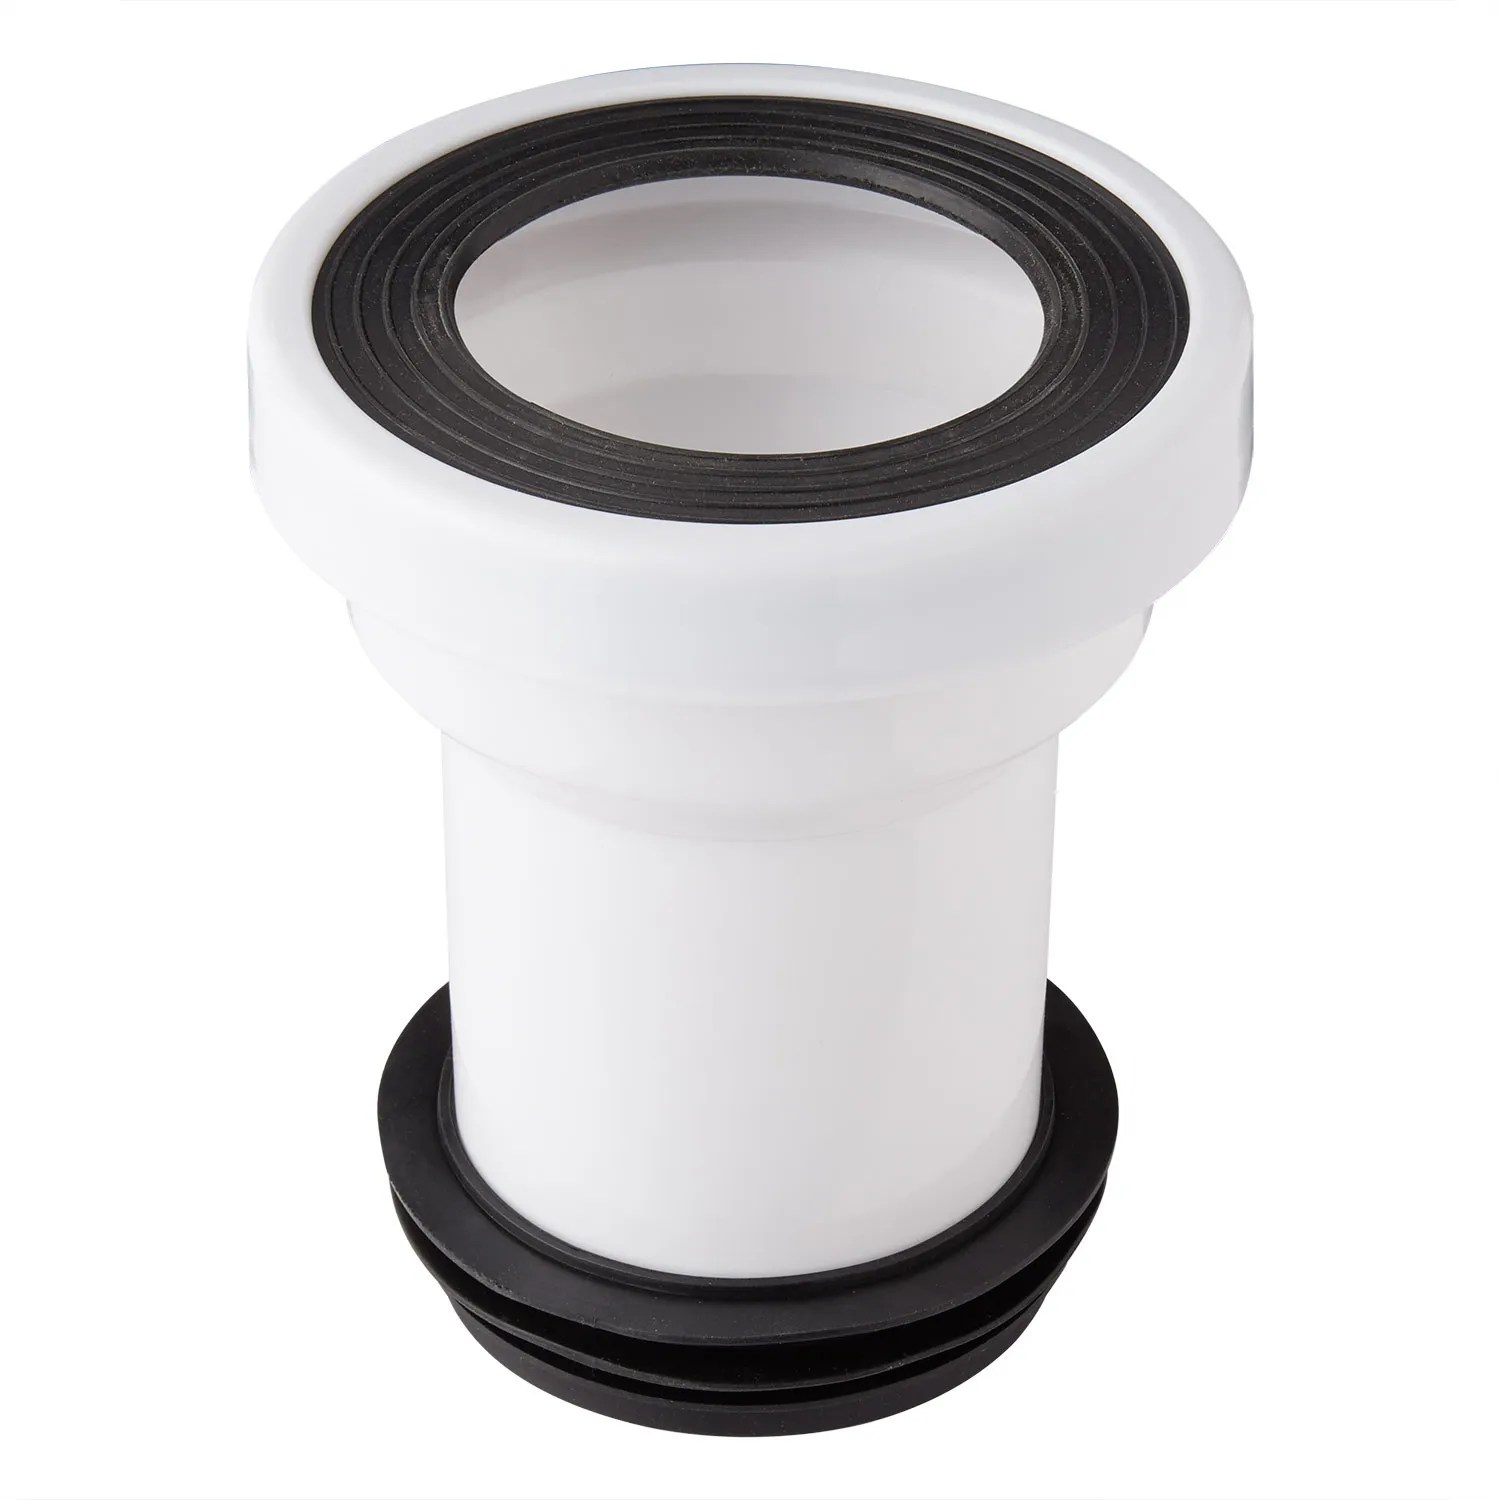 Rear Outlet Toilet P Trap Connector White Bathroom